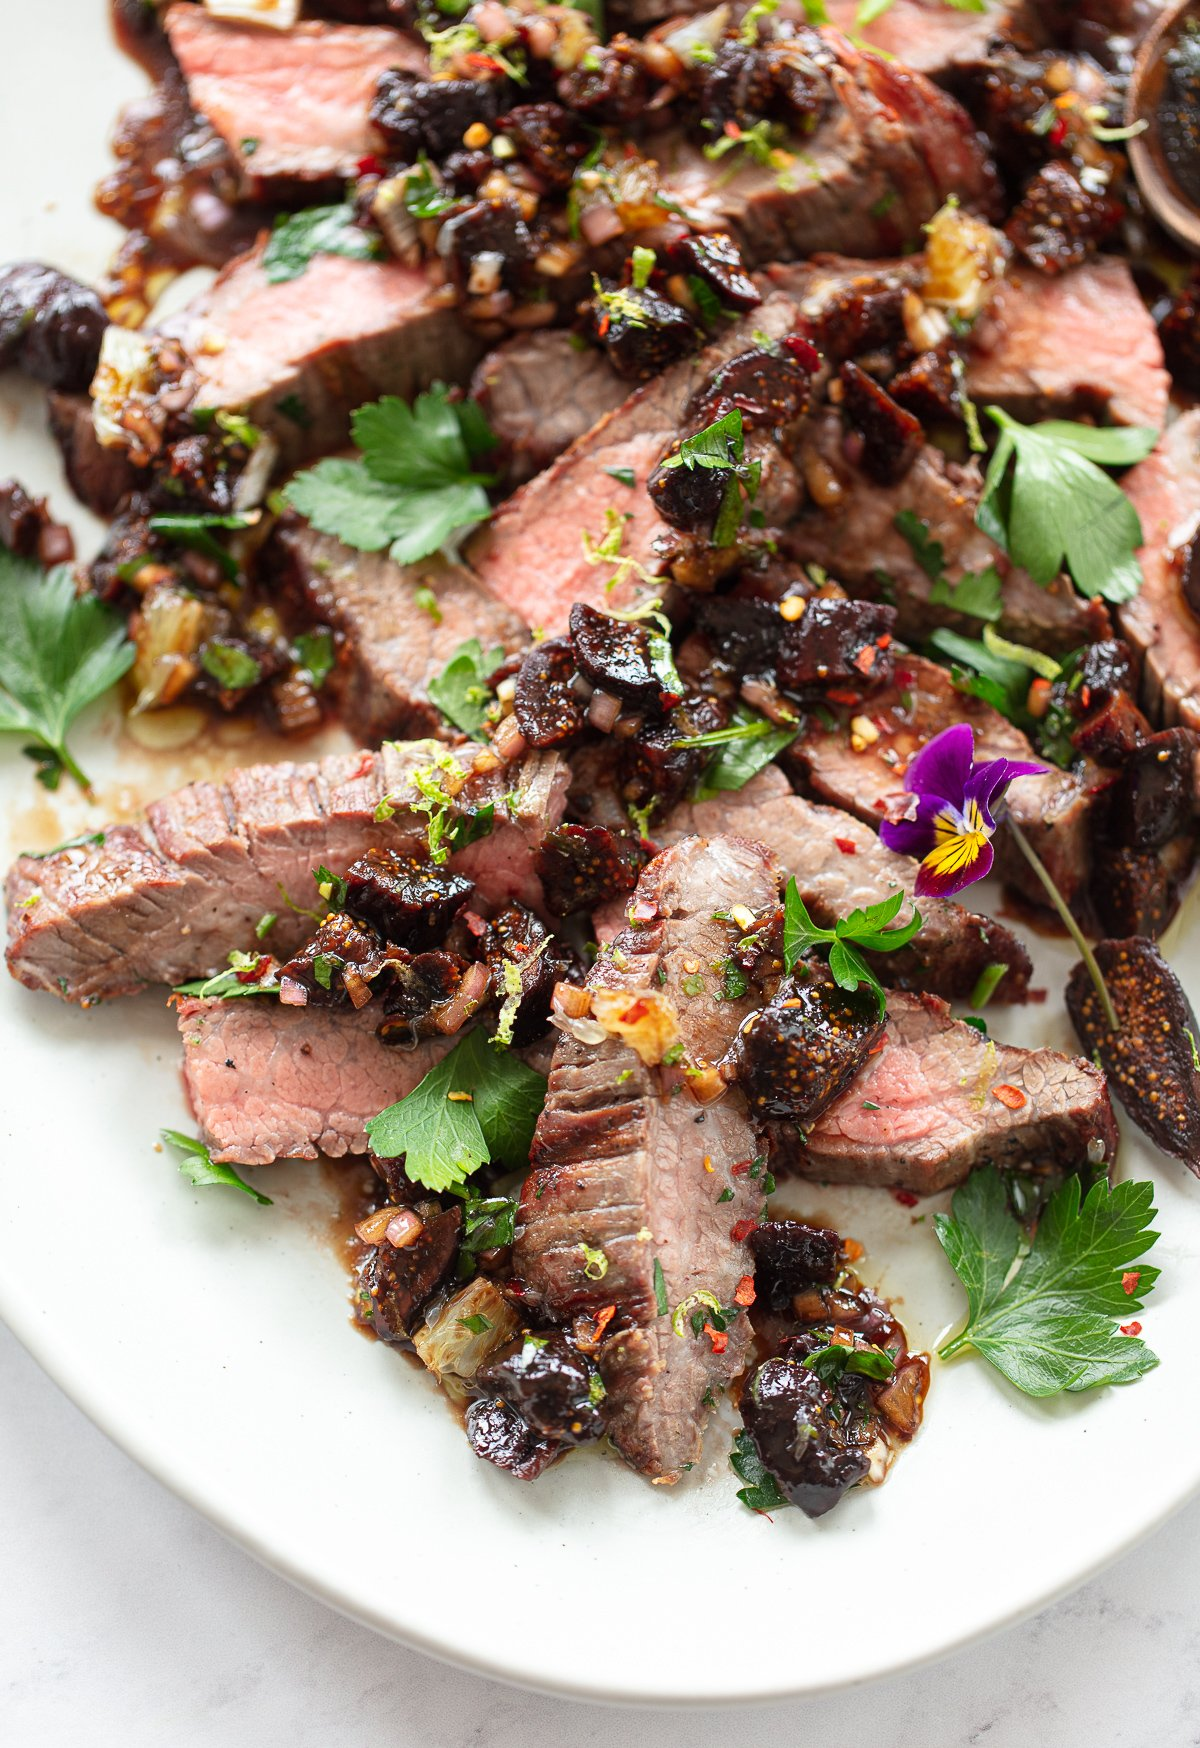 A close up image of sliced medium rare grilled steak topped with a dried fig sauce and fresh parsley.